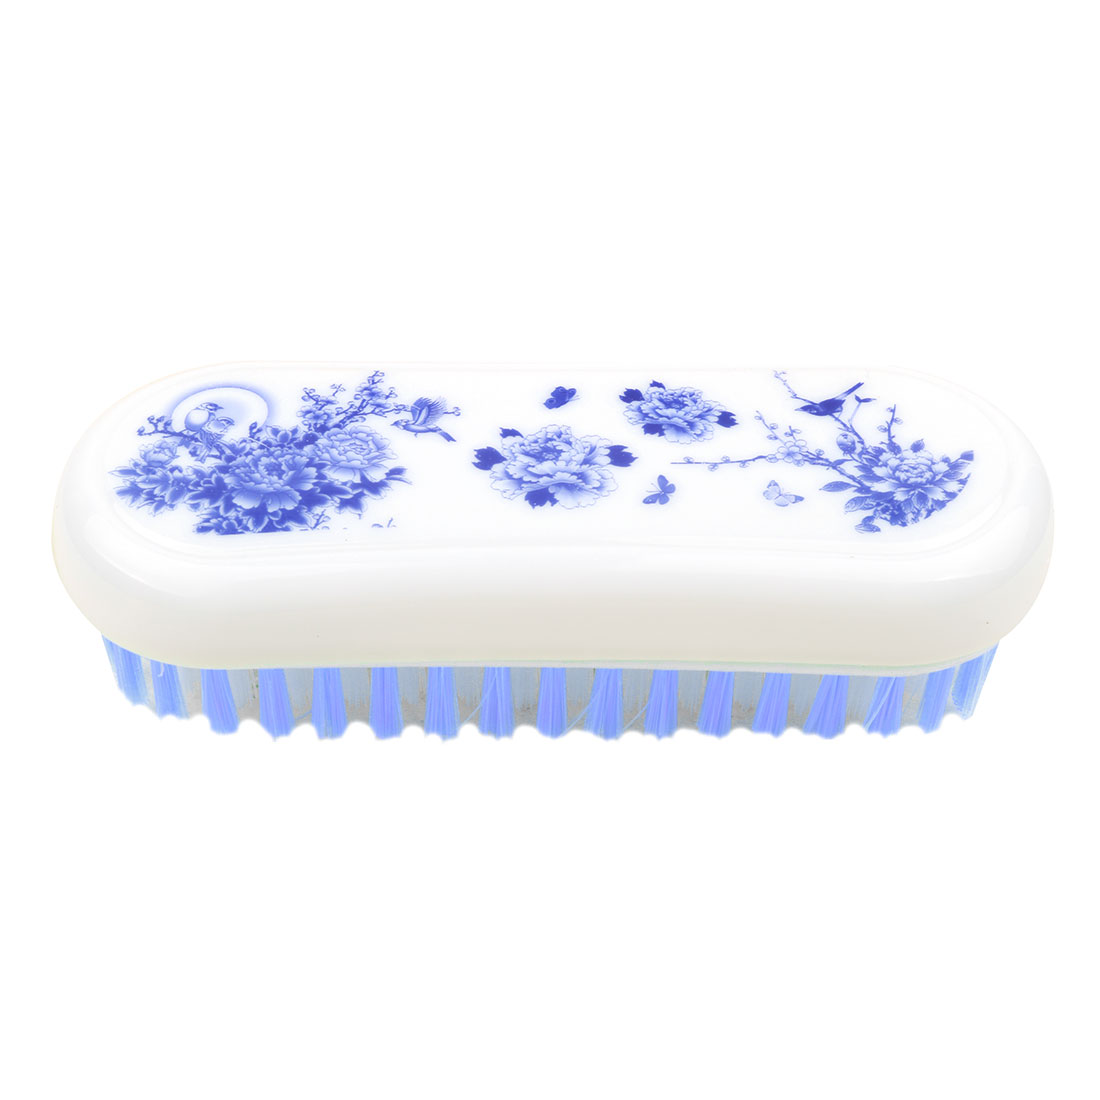 Household Plastic Floral Pattern Oval Shaped Shoes Clothes Scrubbing Brush Blue